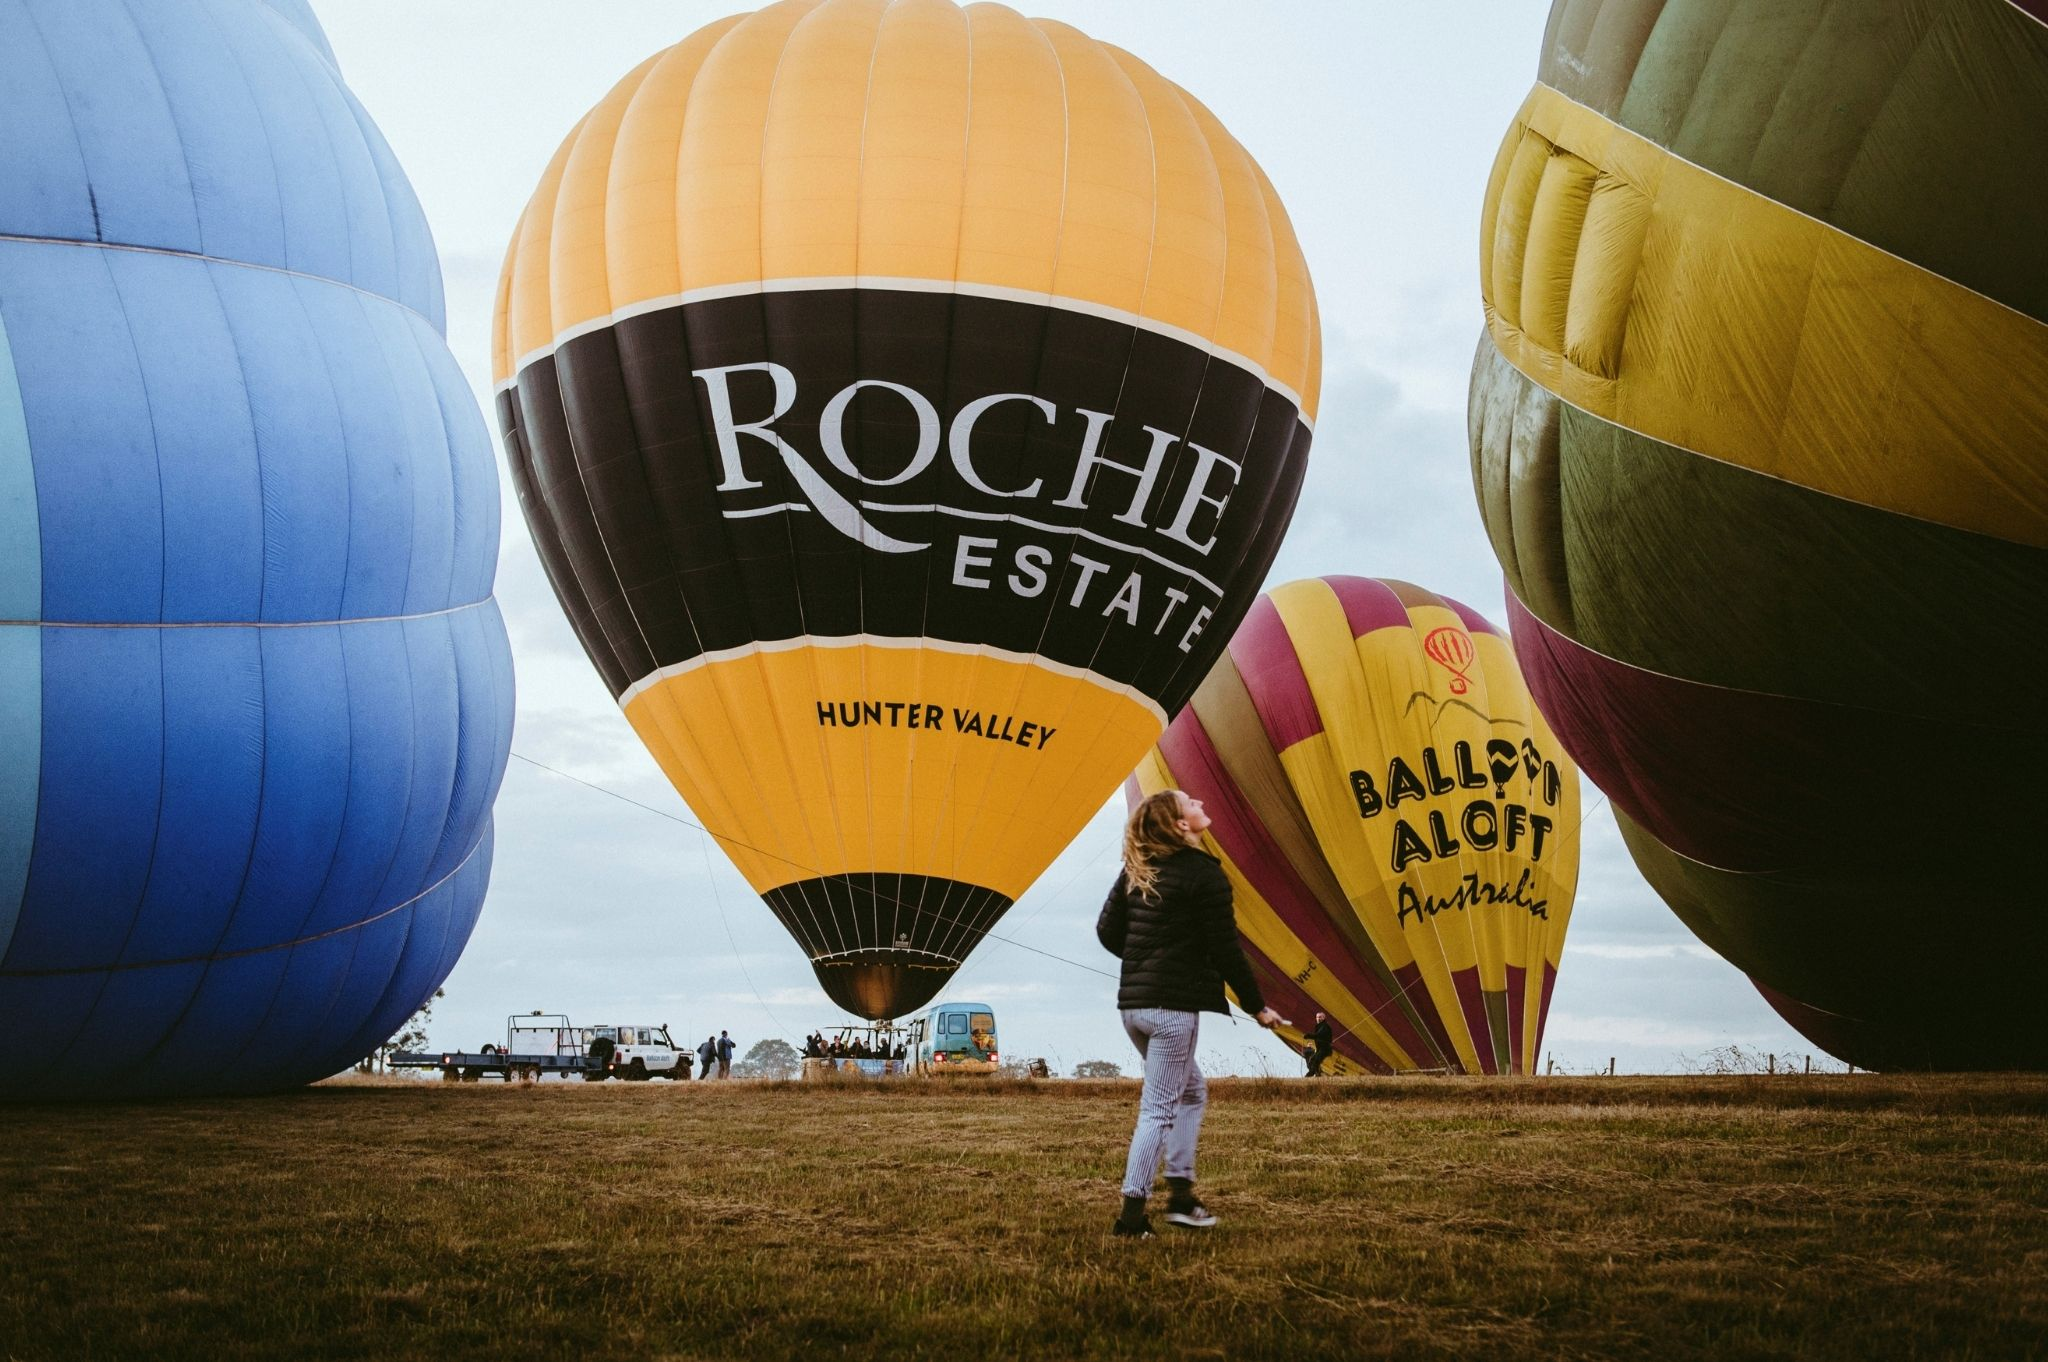 Image of a woman Hot Air Ballooning in the NSW Hunter Valley